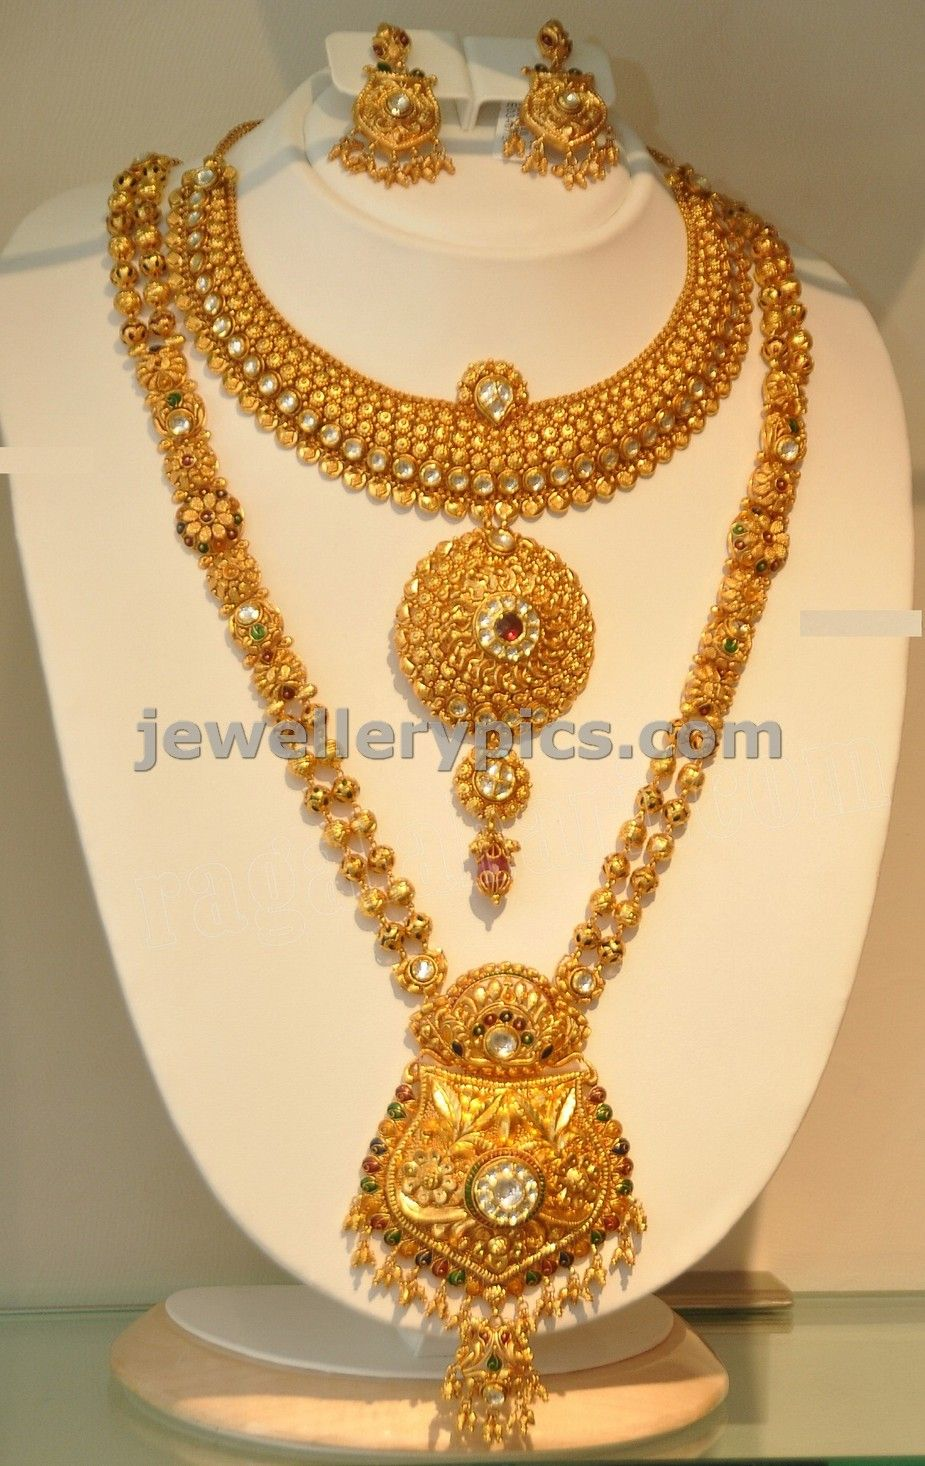 Gold necklace designs in grt jewellers - Khazana Gold Haram Long Necklace Designs Latest Jewellery Designs